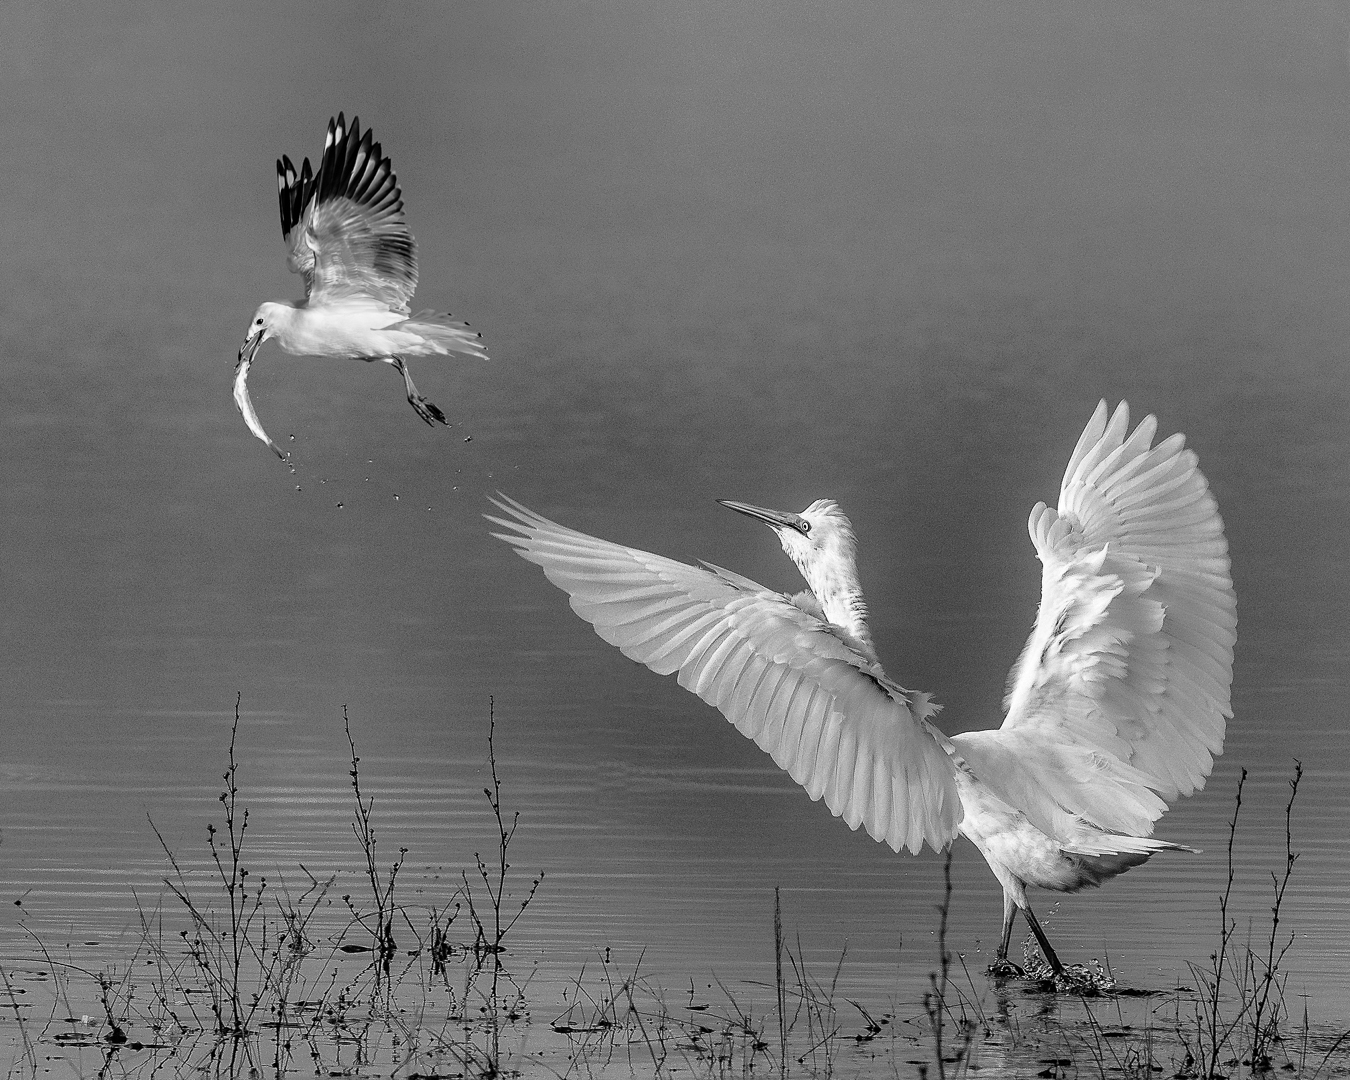 """2019 Open Monochrome Section """"Theif !"""" by Lyndee O'Gower: Awarded APS Gold Medal"""